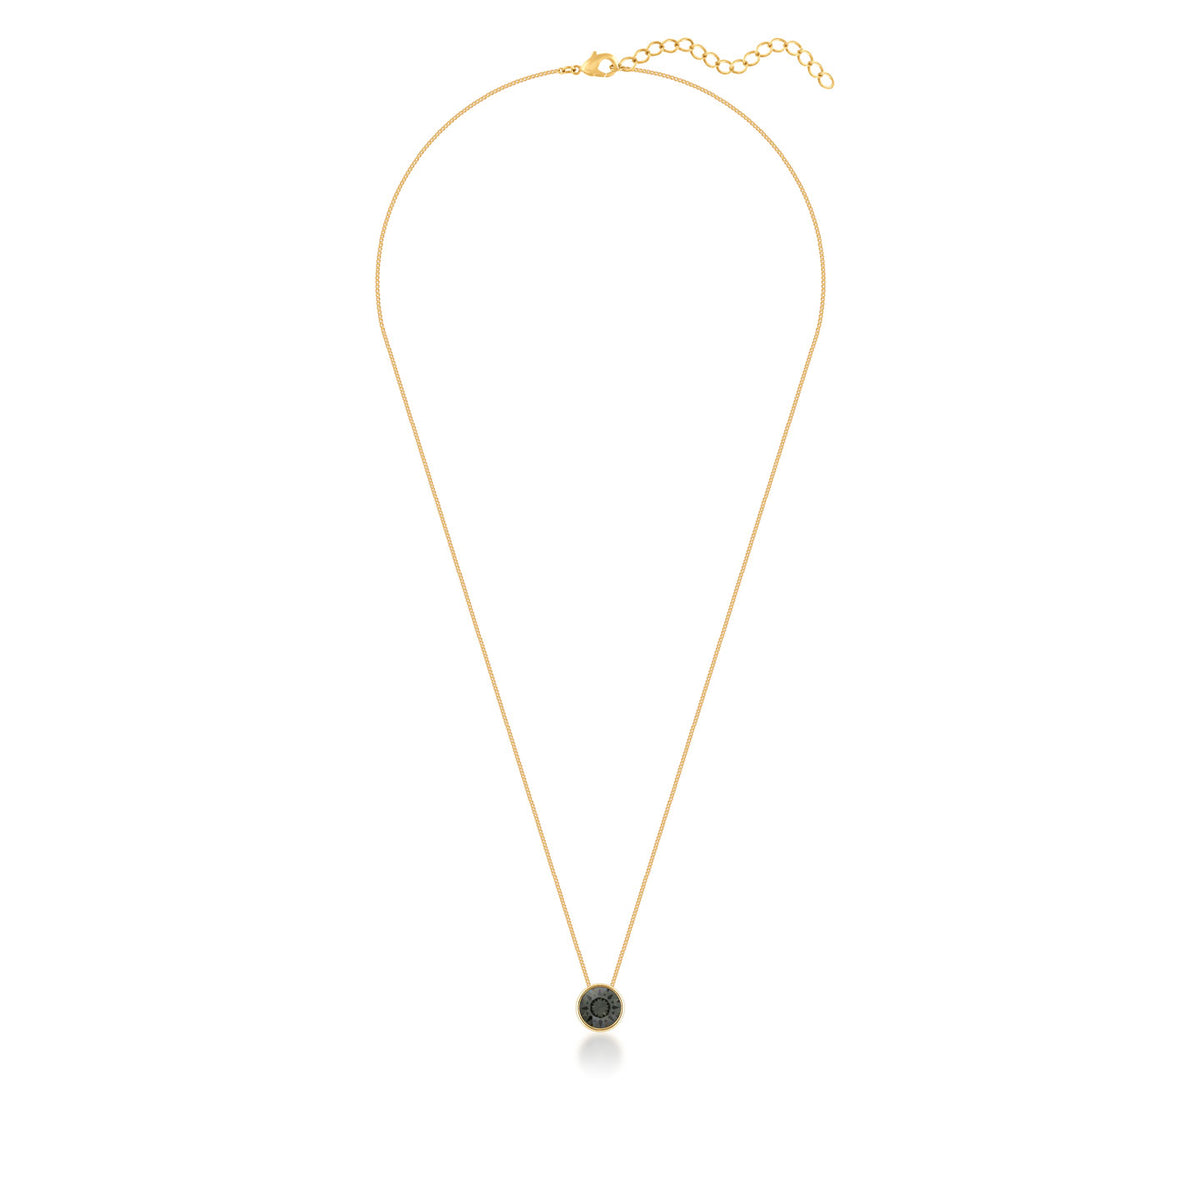 Harley Small Pendant Necklace with Black Diamond Round Crystals from Swarovski Gold Plated - Ed Heart